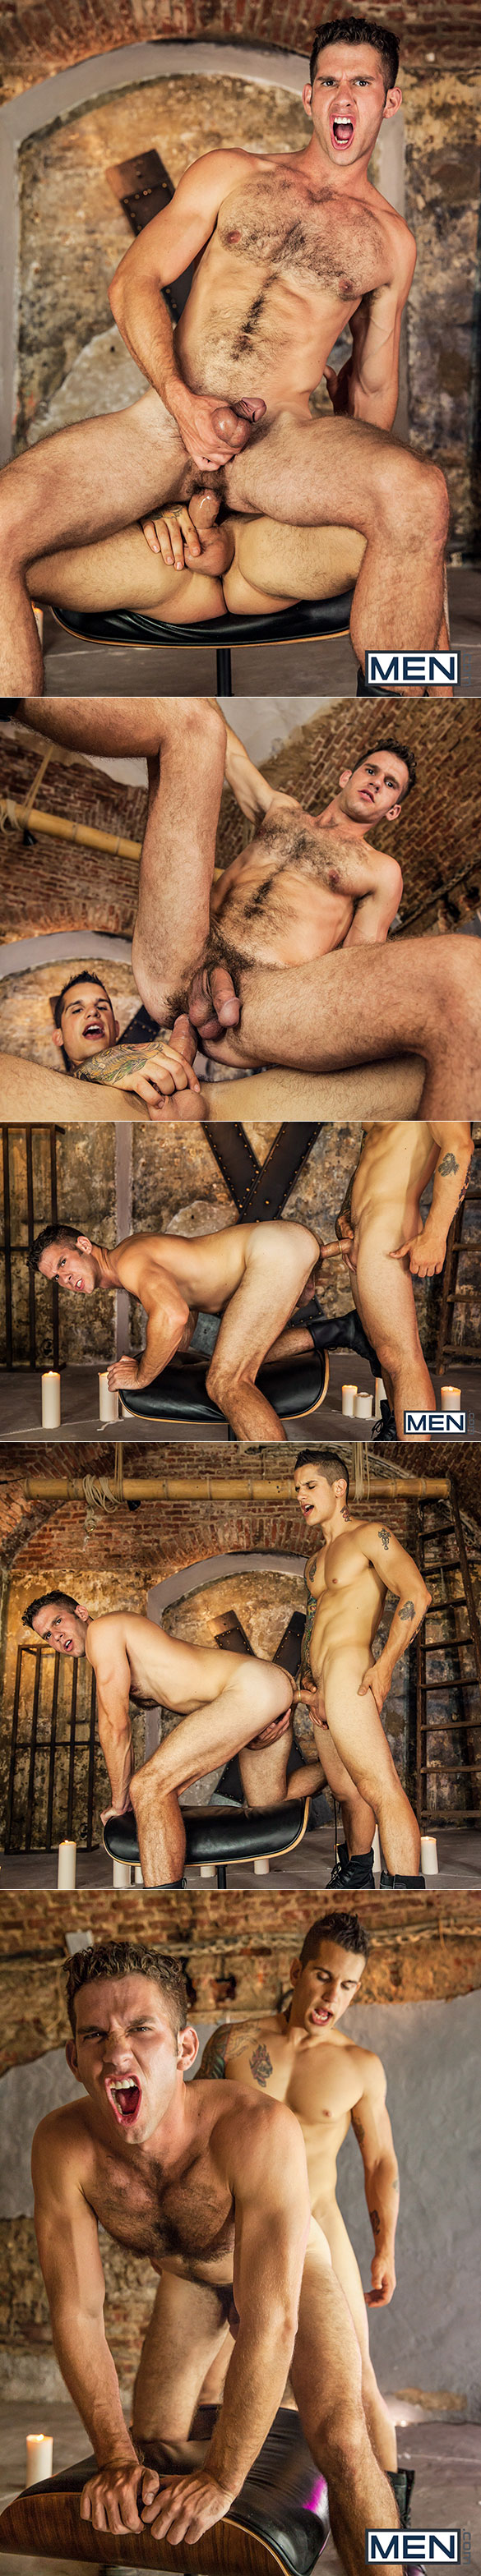 """Men.com: Jimmy Fanz and Pierre Fitch flip fuck in """"Thrist, Part 3"""""""